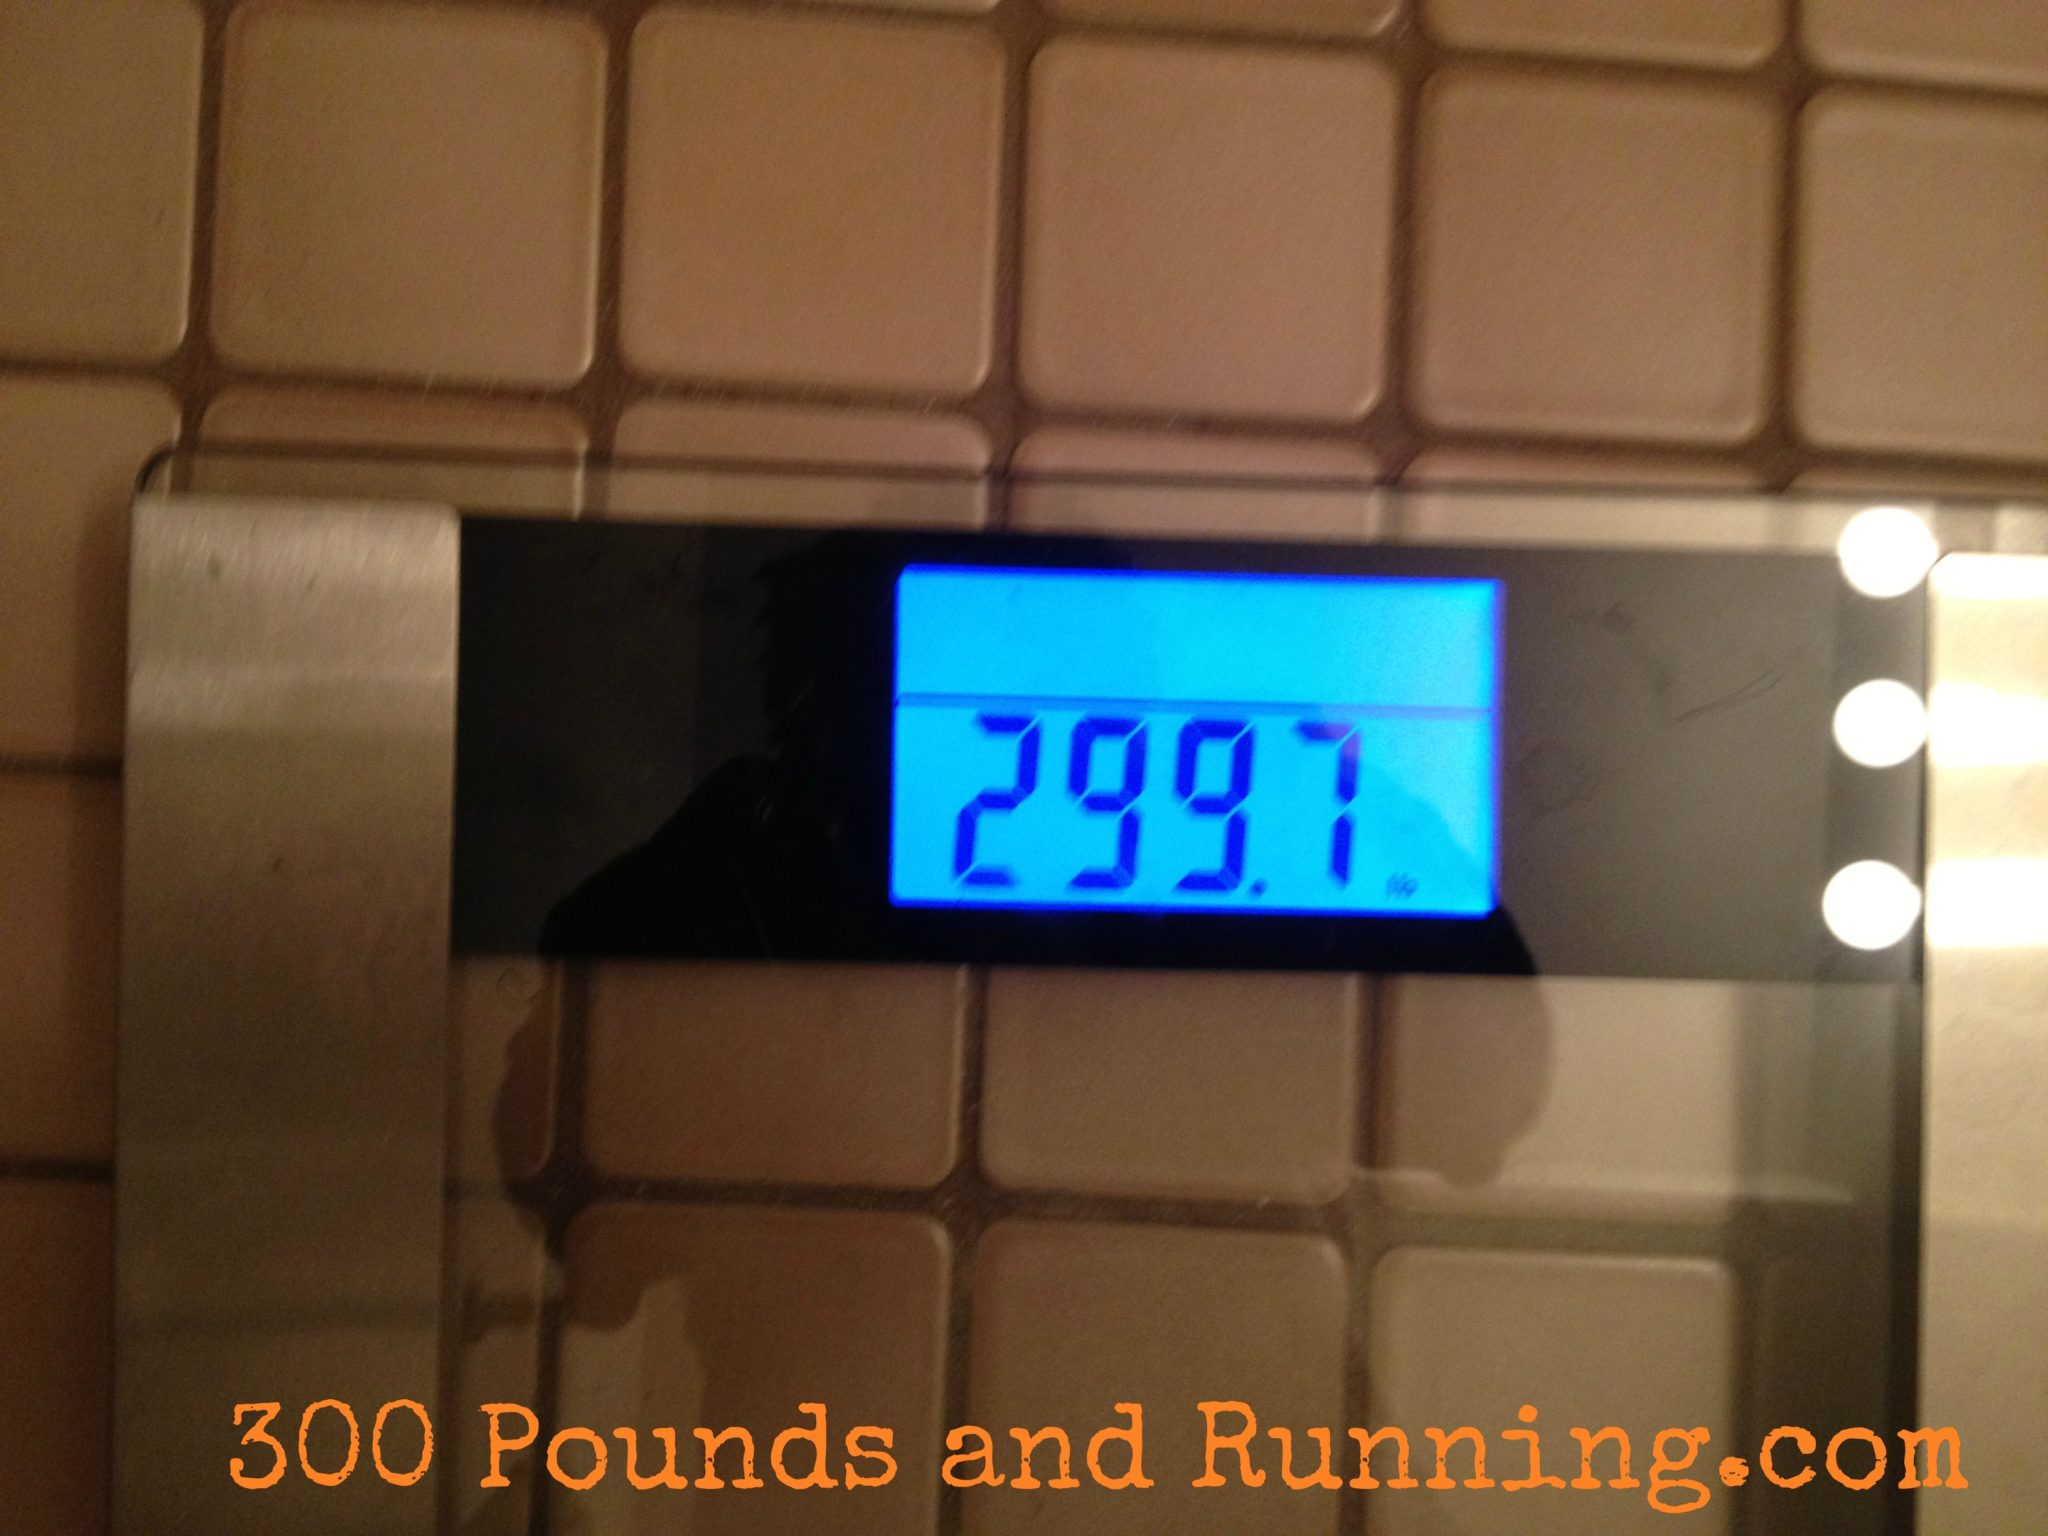 Weigh-In Wednesday: No Longer 300 Pounds Edition